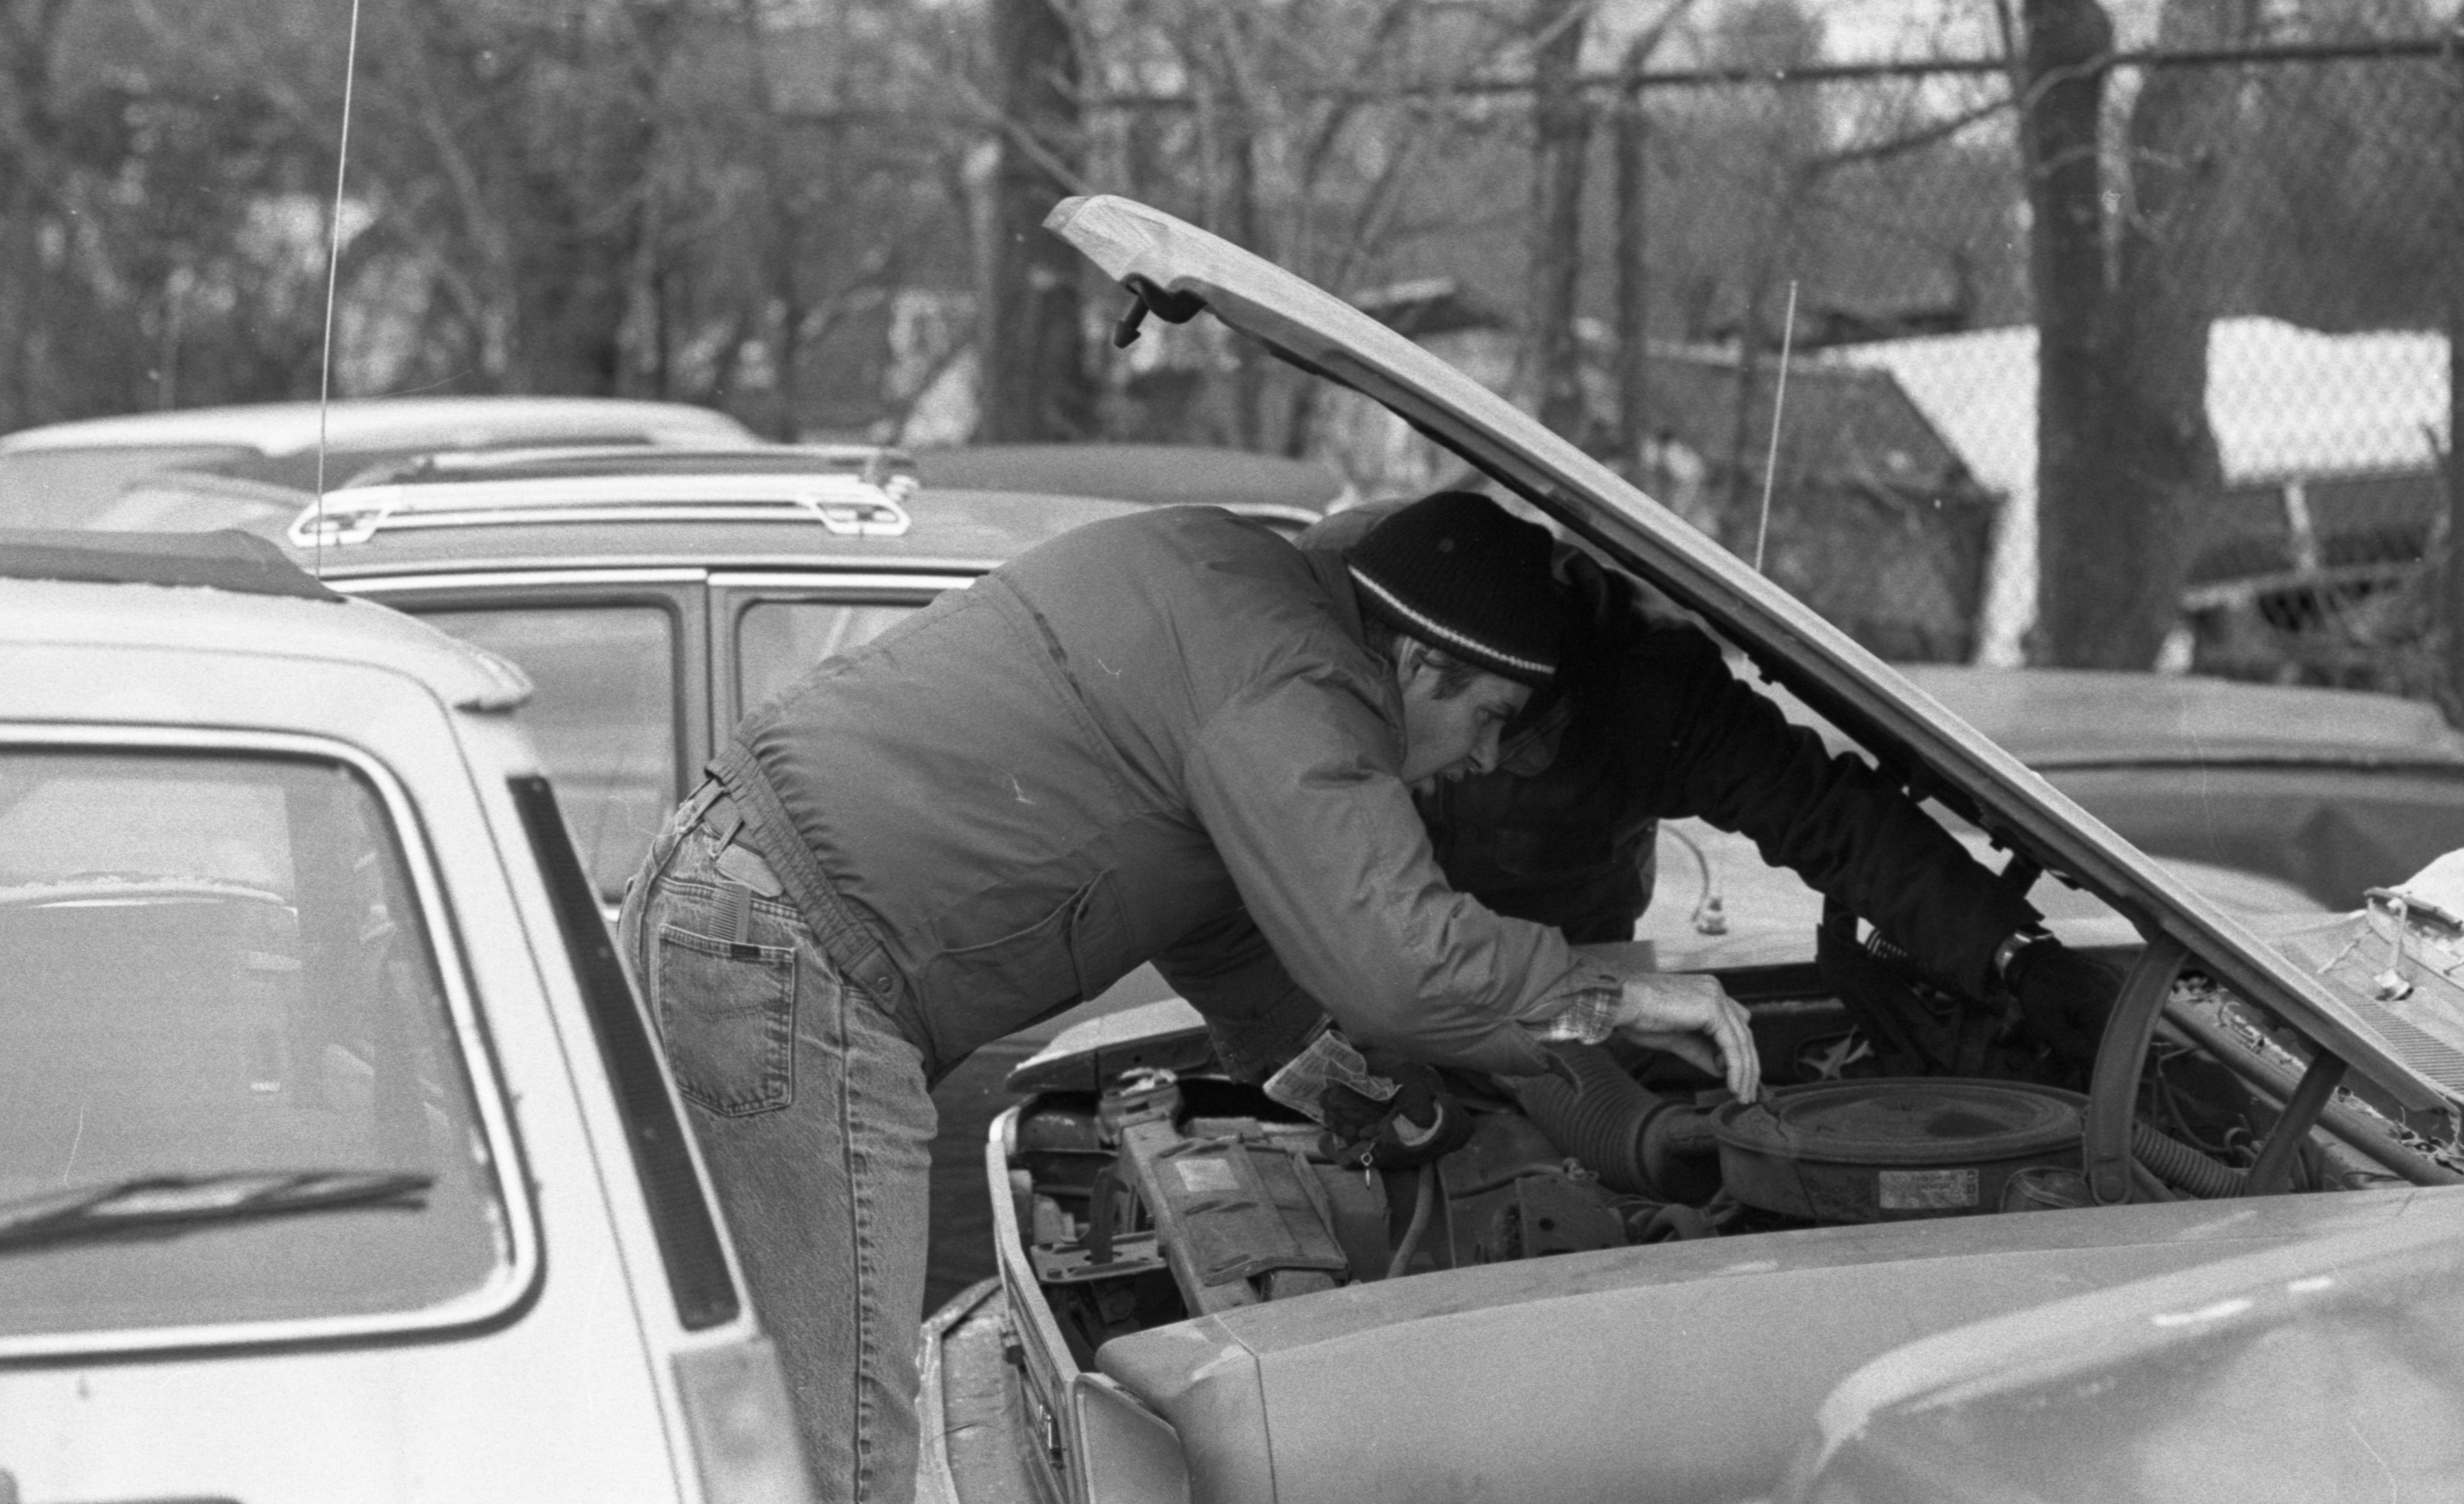 Customer Checks Out Auto at Ann Arbor Police Used Car Auction, January 1987 image